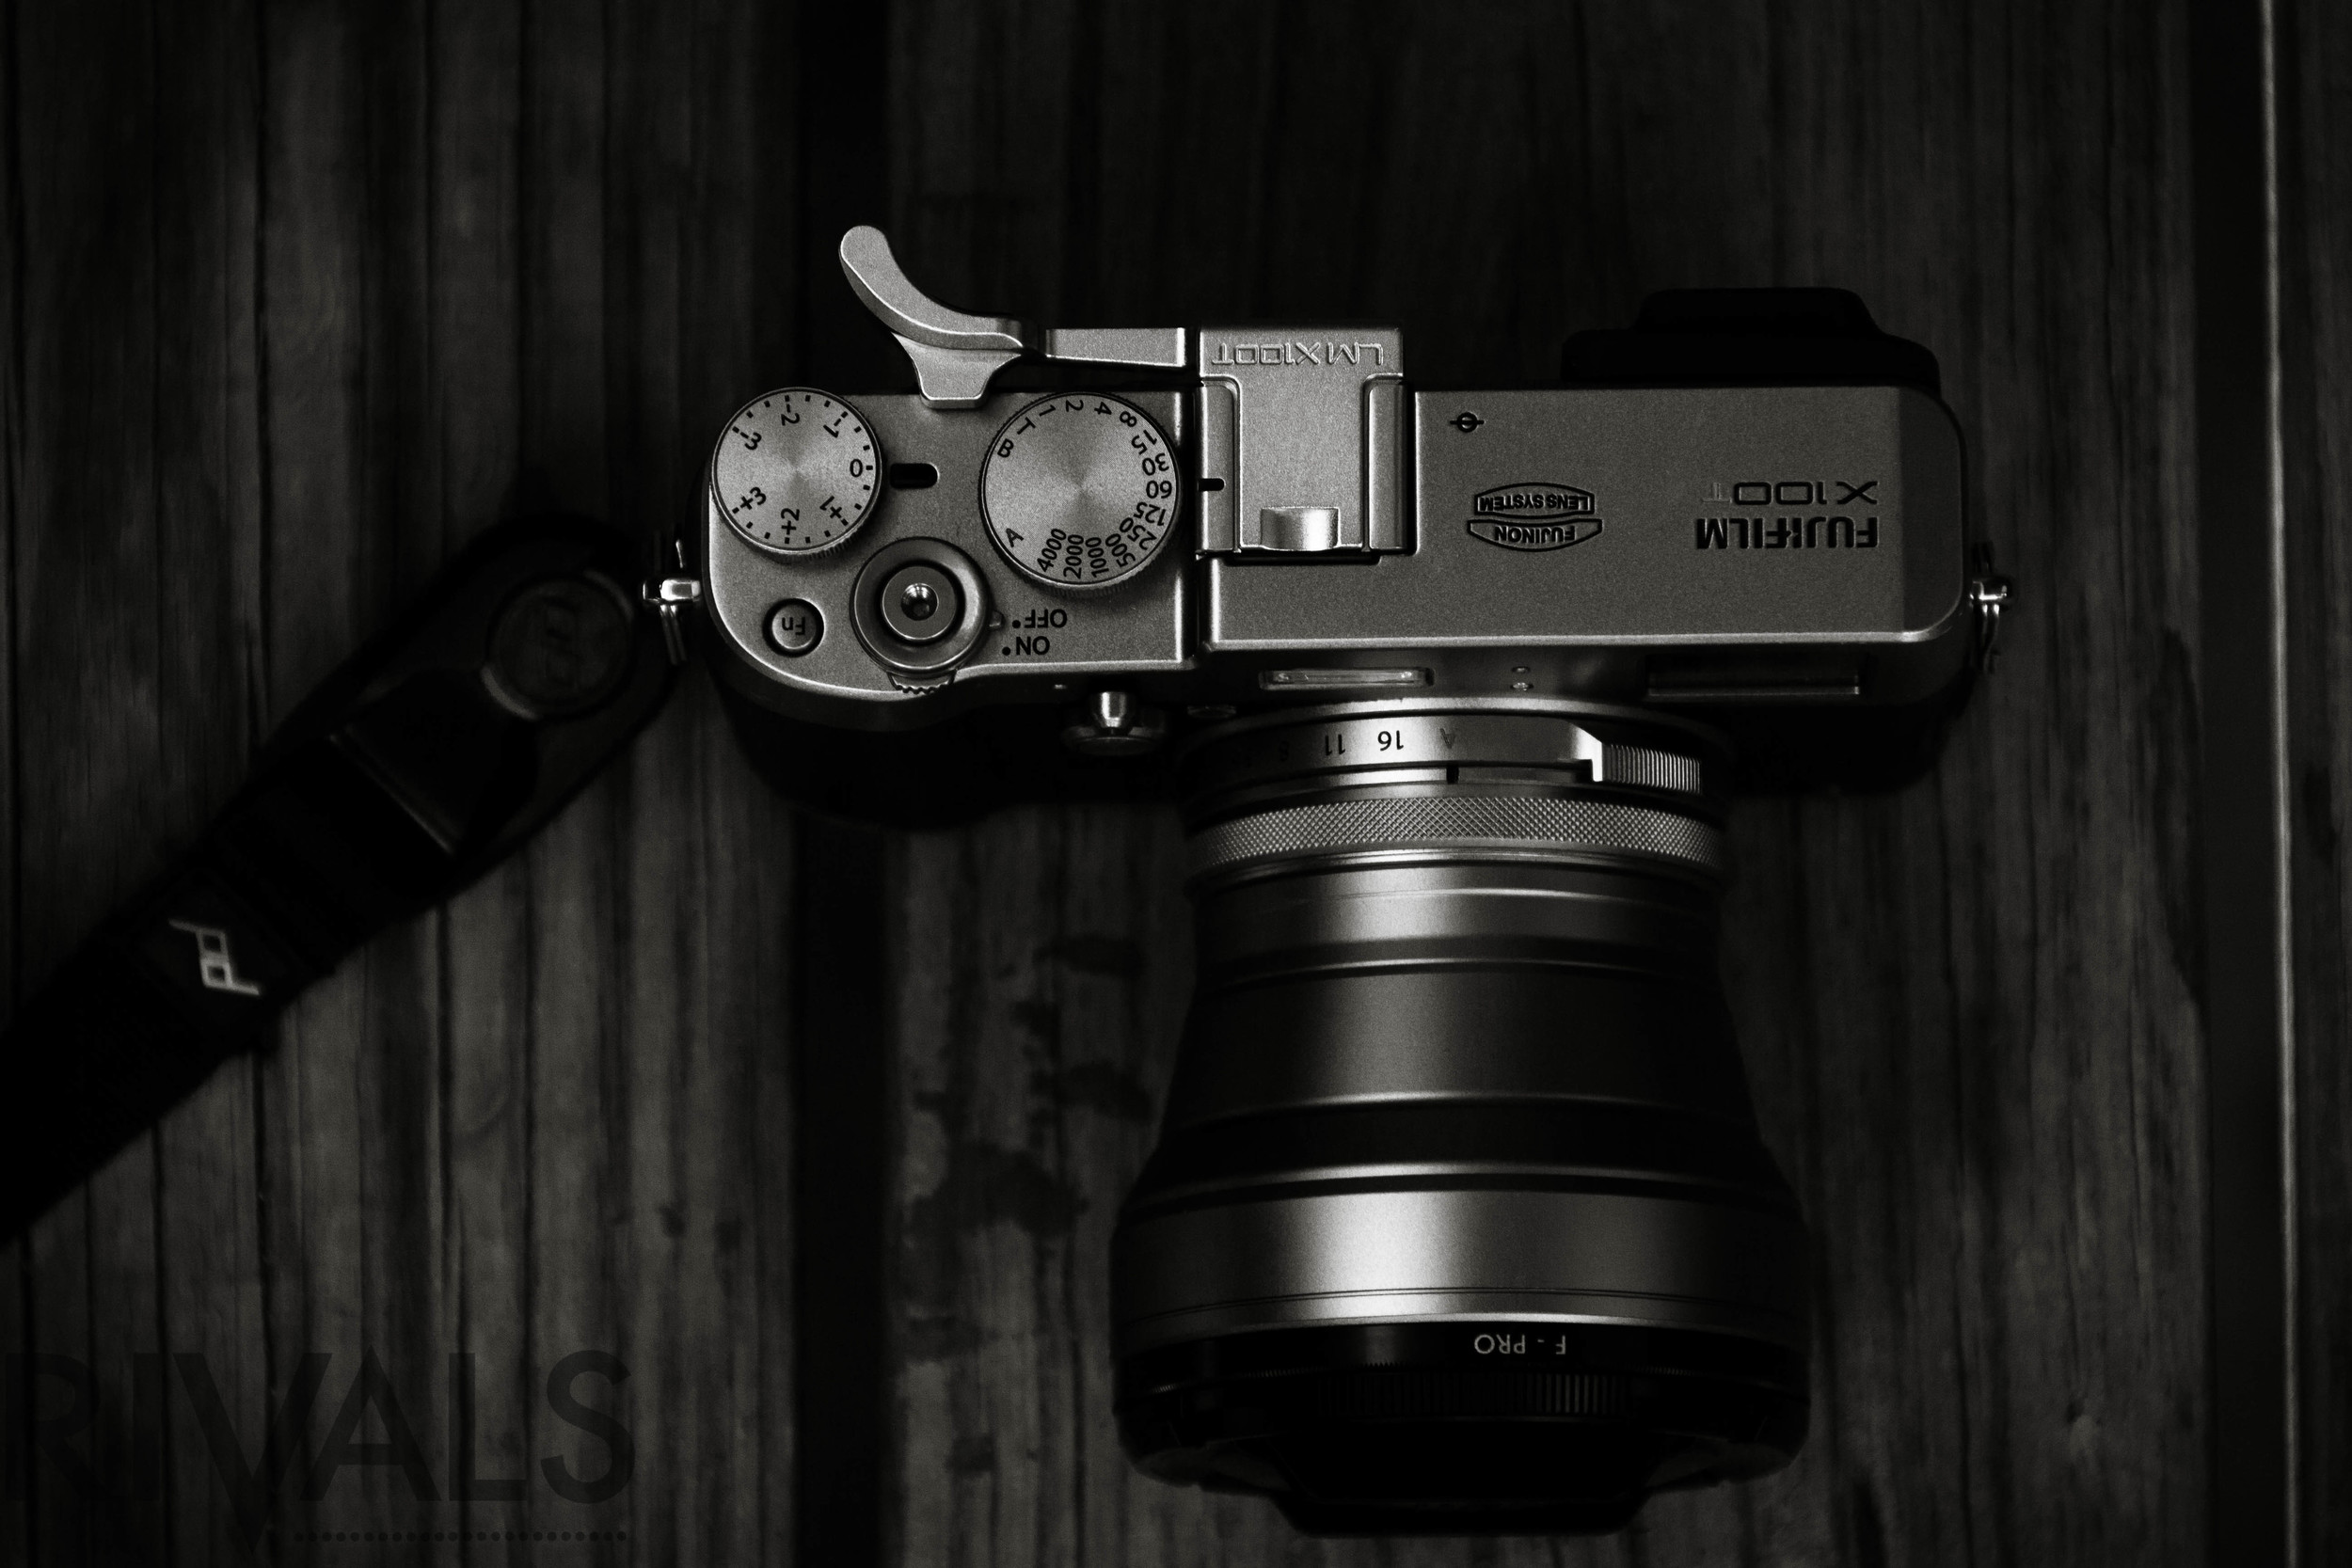 The  Lensmate Thumbrest  for the Fujifilm X100T shows it's difference in color.